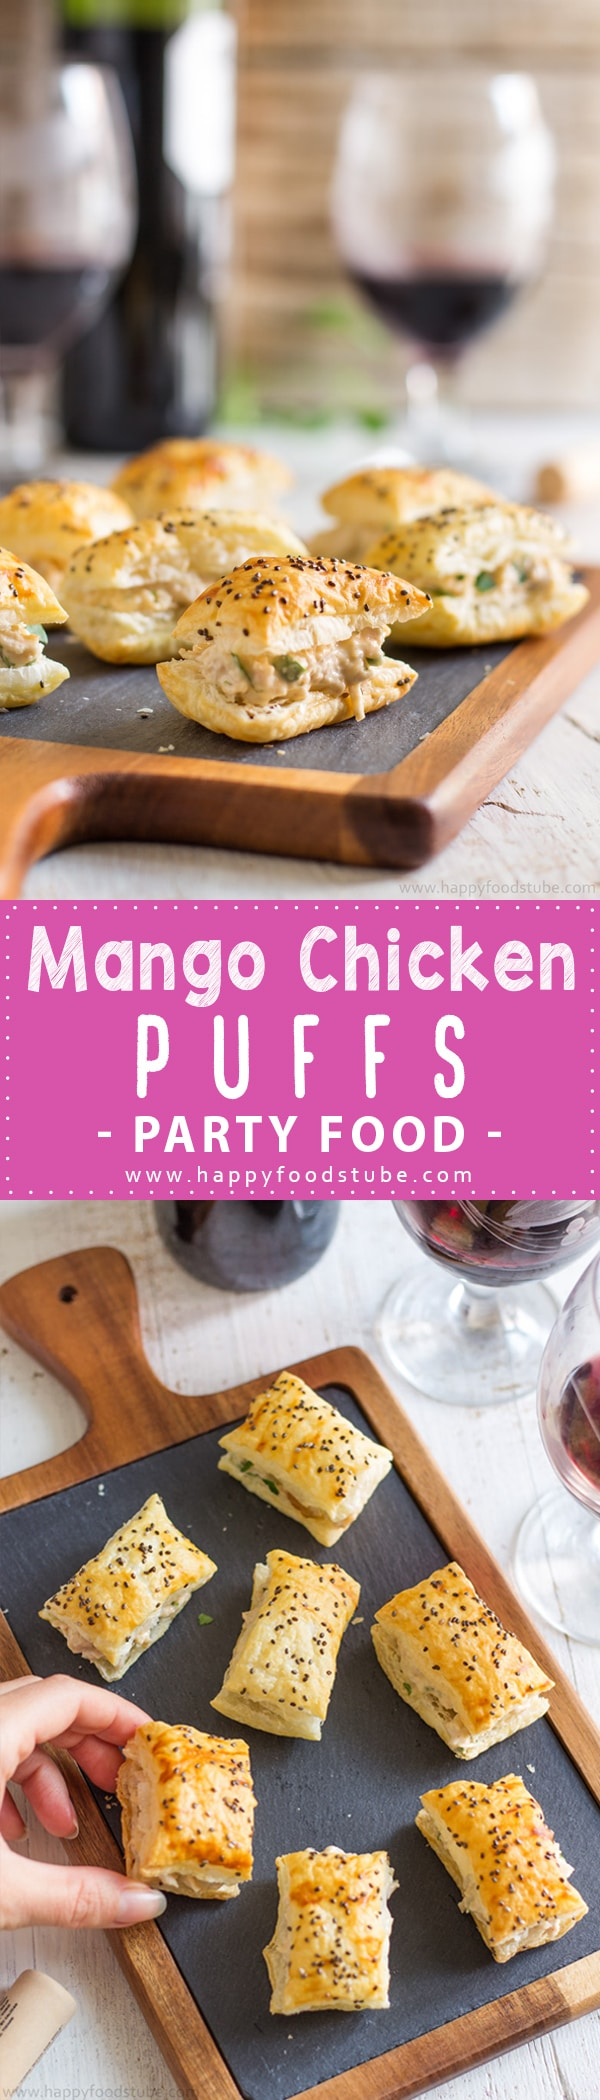 Mango Chicken Puffs Appetizers - Easy Party Food Recipe | happyfoodstube.com